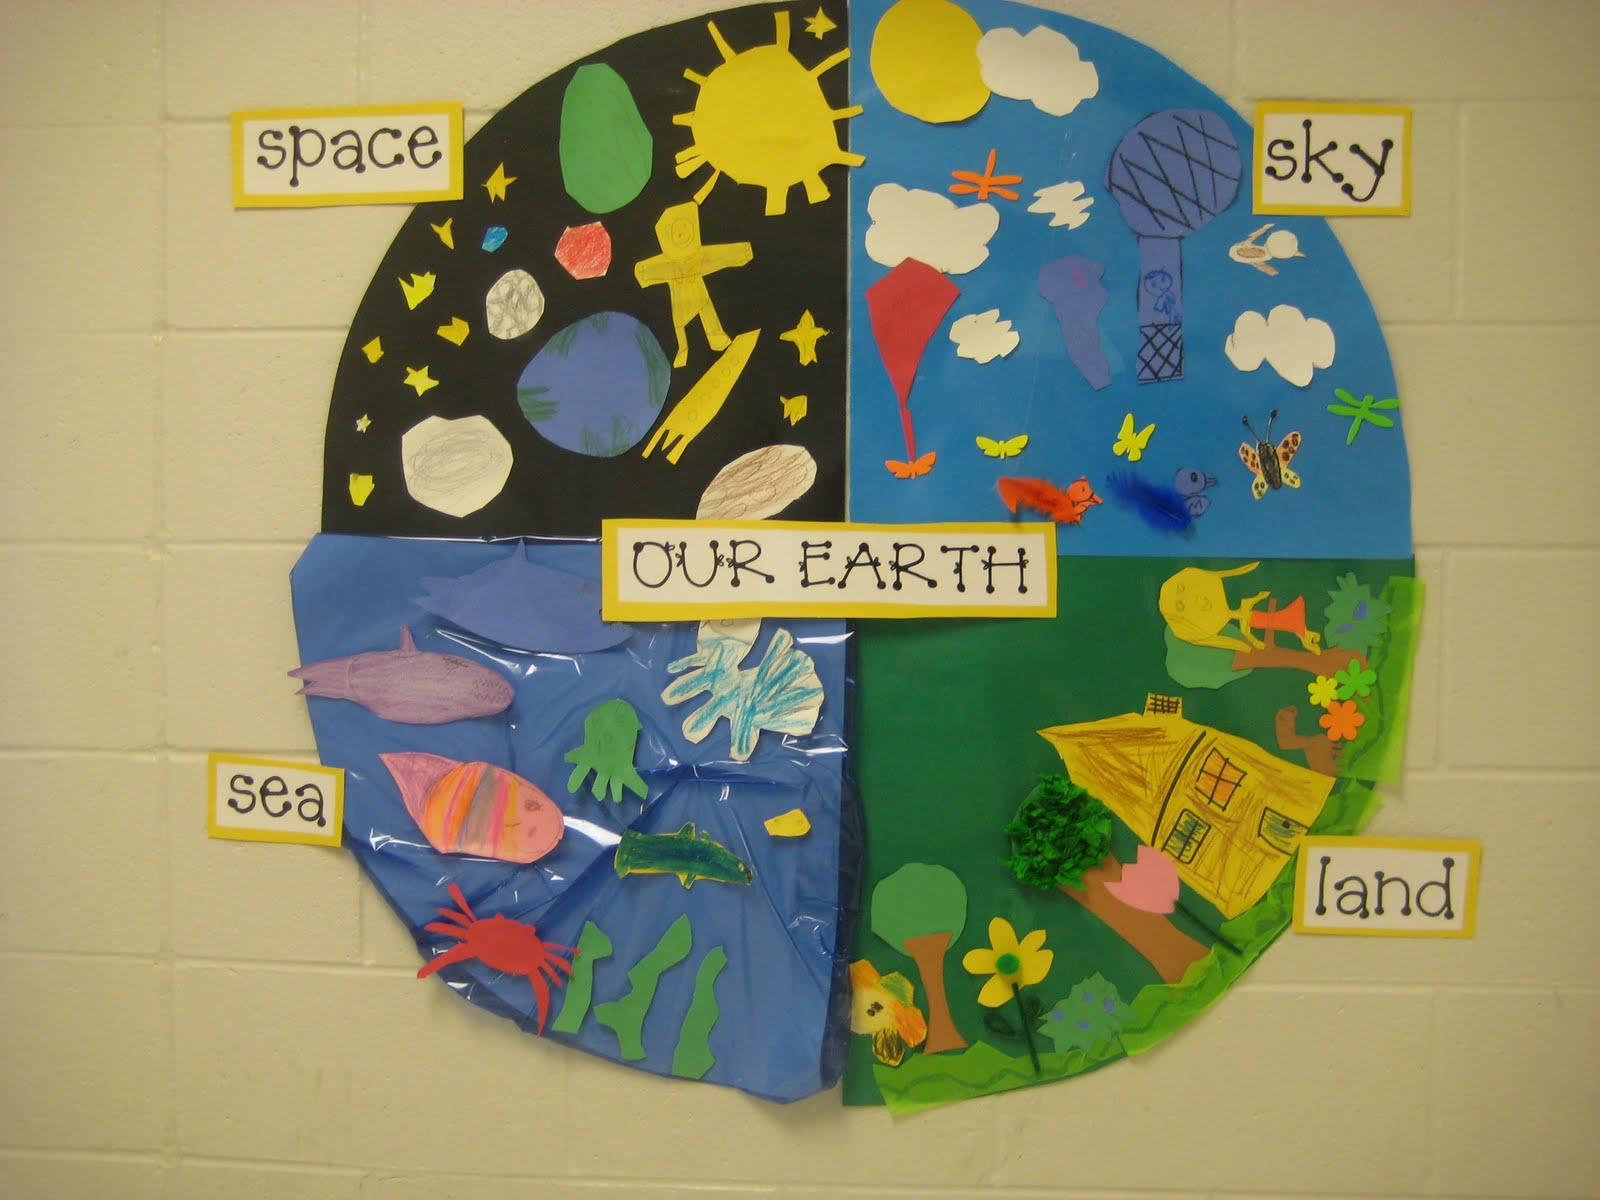 Kinder Garden Earth Week Activities